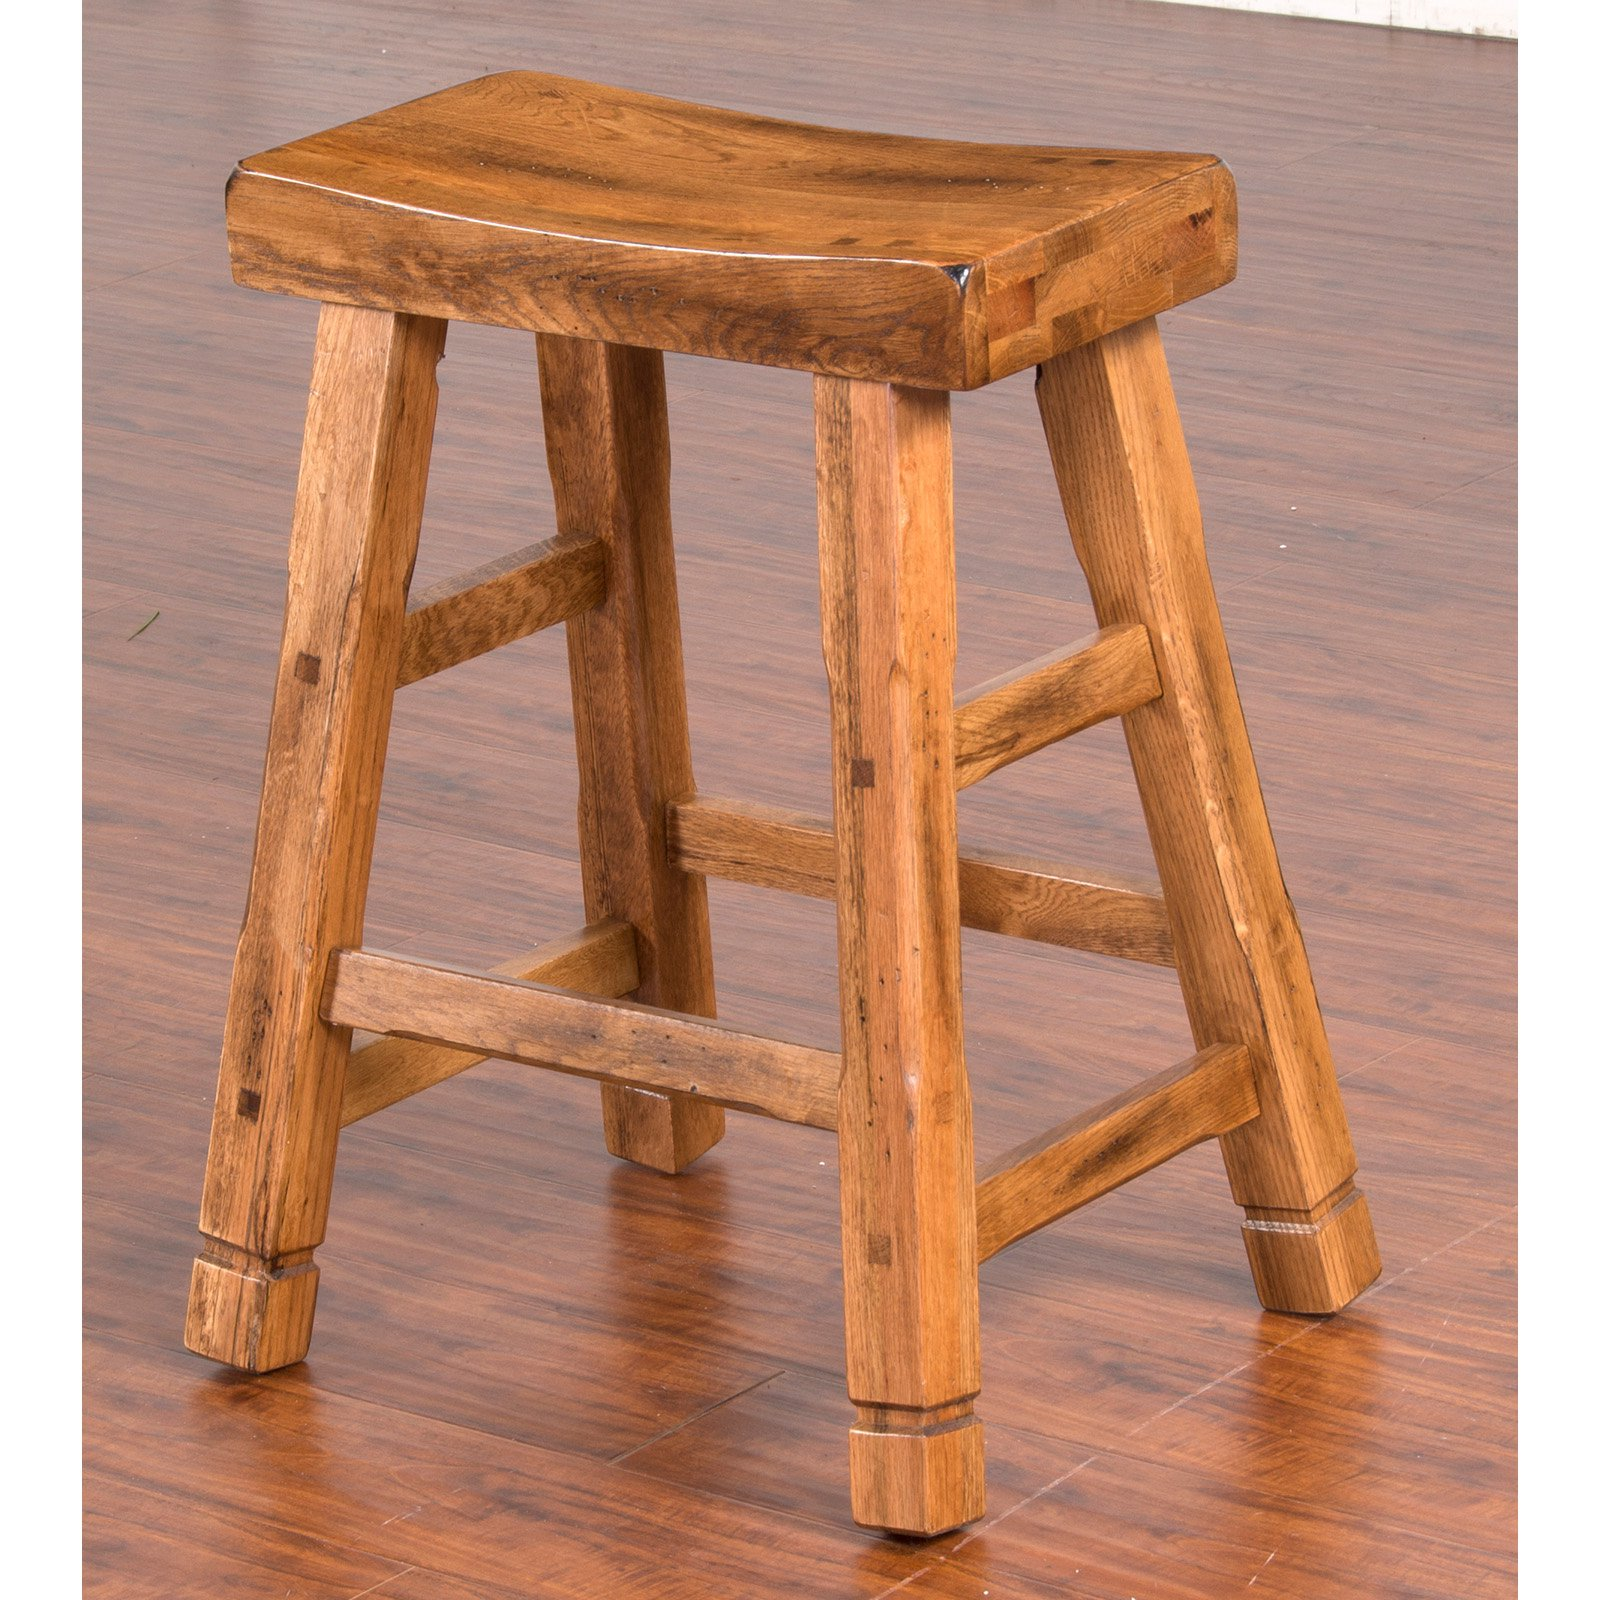 Sunny Designs Sedona 24 in. Saddle Seat Counter Stool